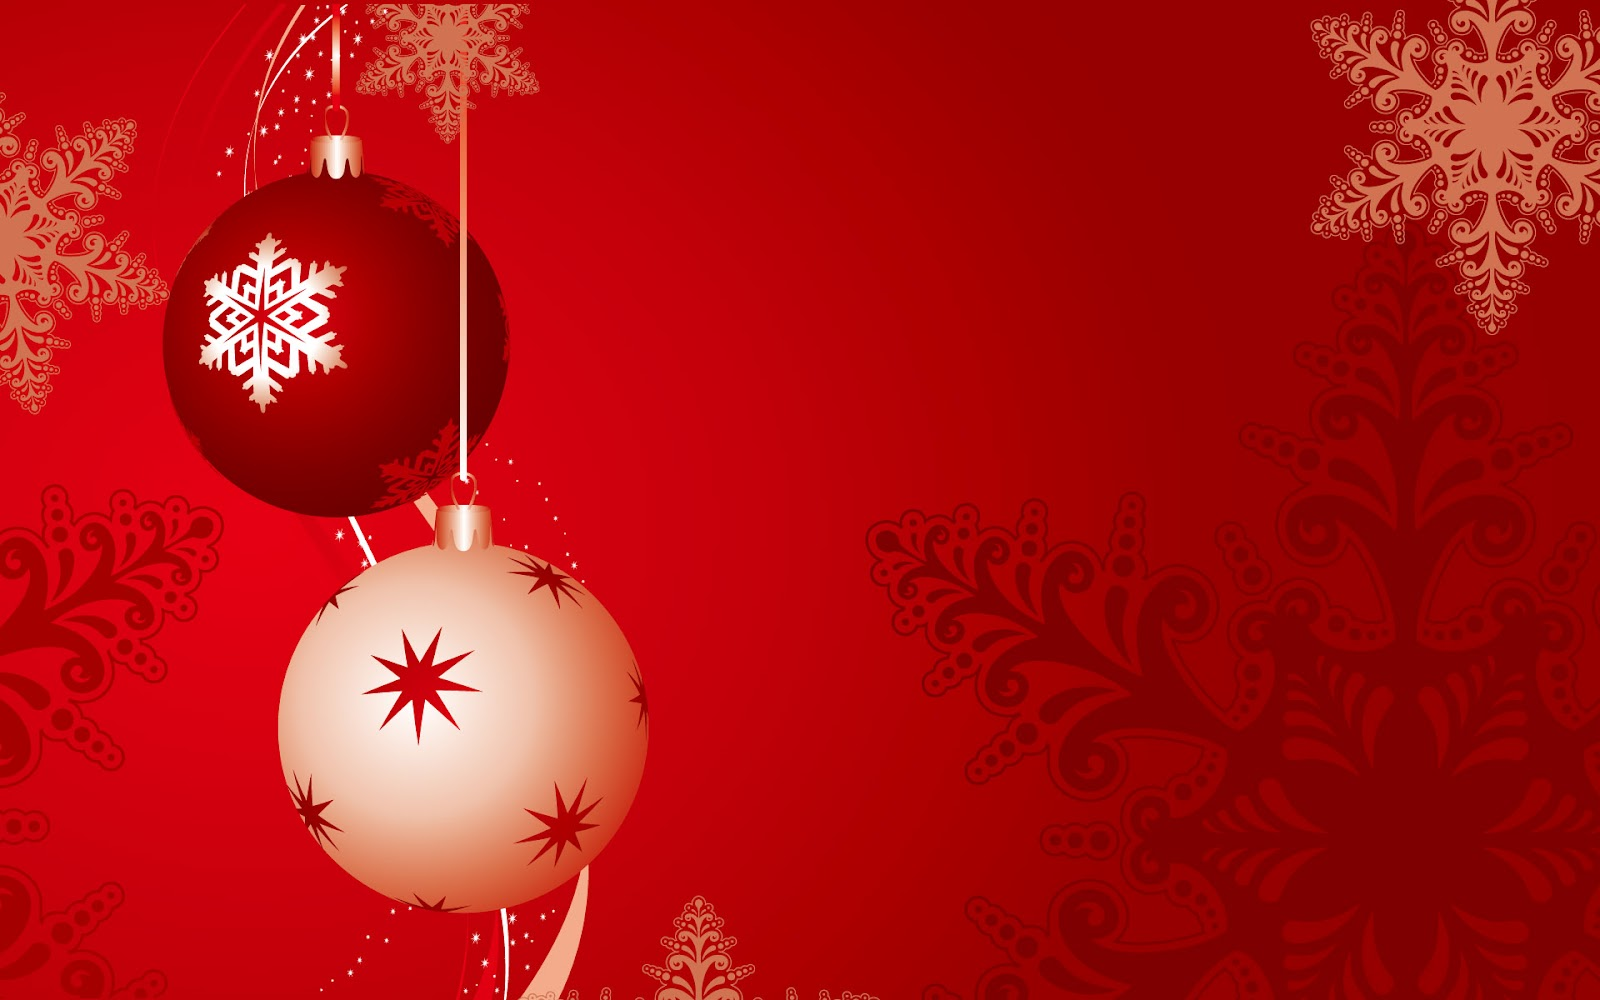 happy new years 2014: merry christmas 2014 - 2015 wallpapers